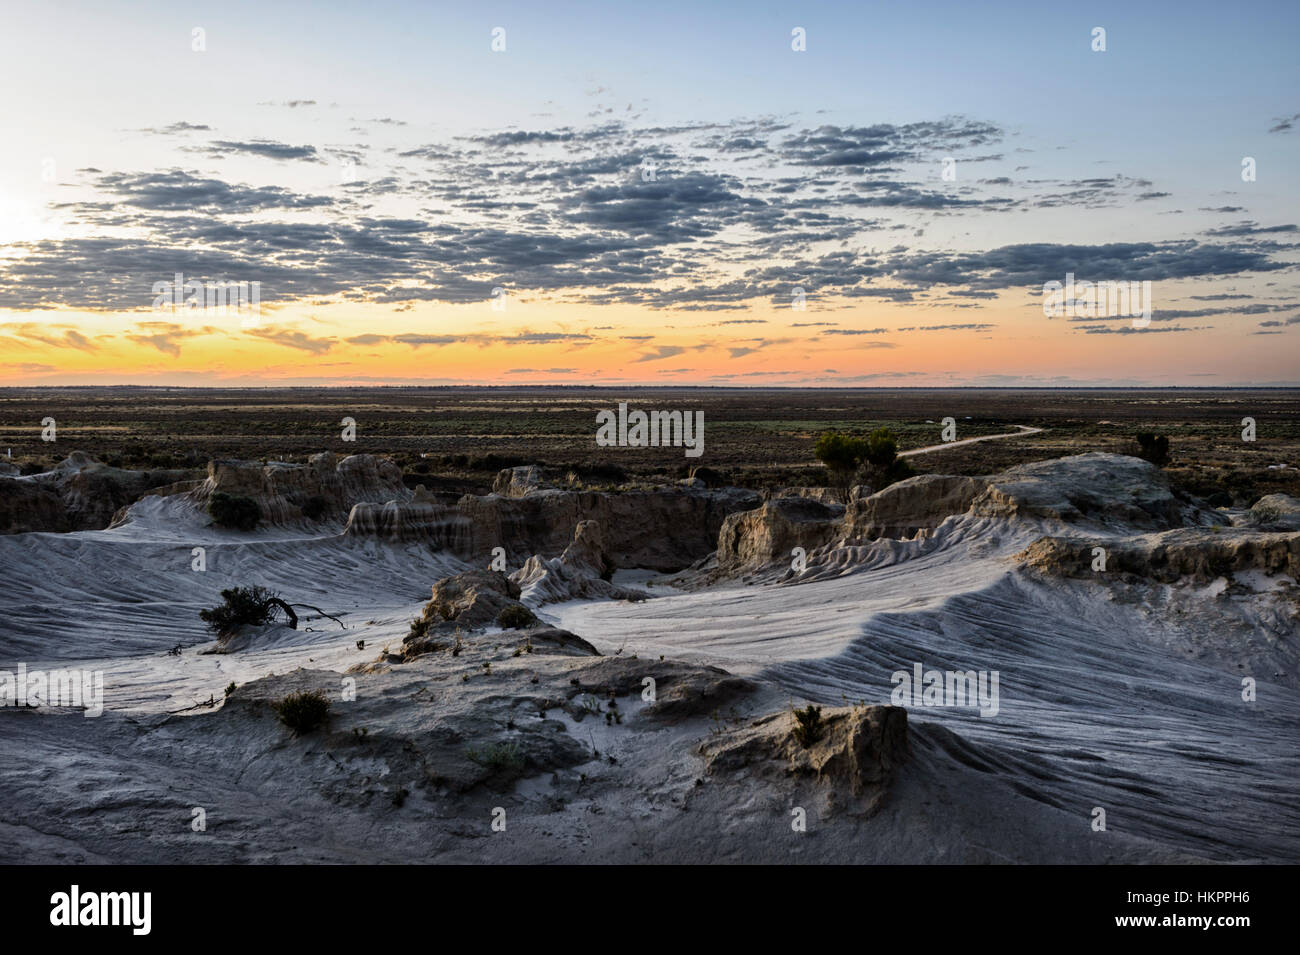 Sunset over the spectacular eroded rock formations of the Lunette, Mungo National Park, New South Wales, Australia Stock Photo